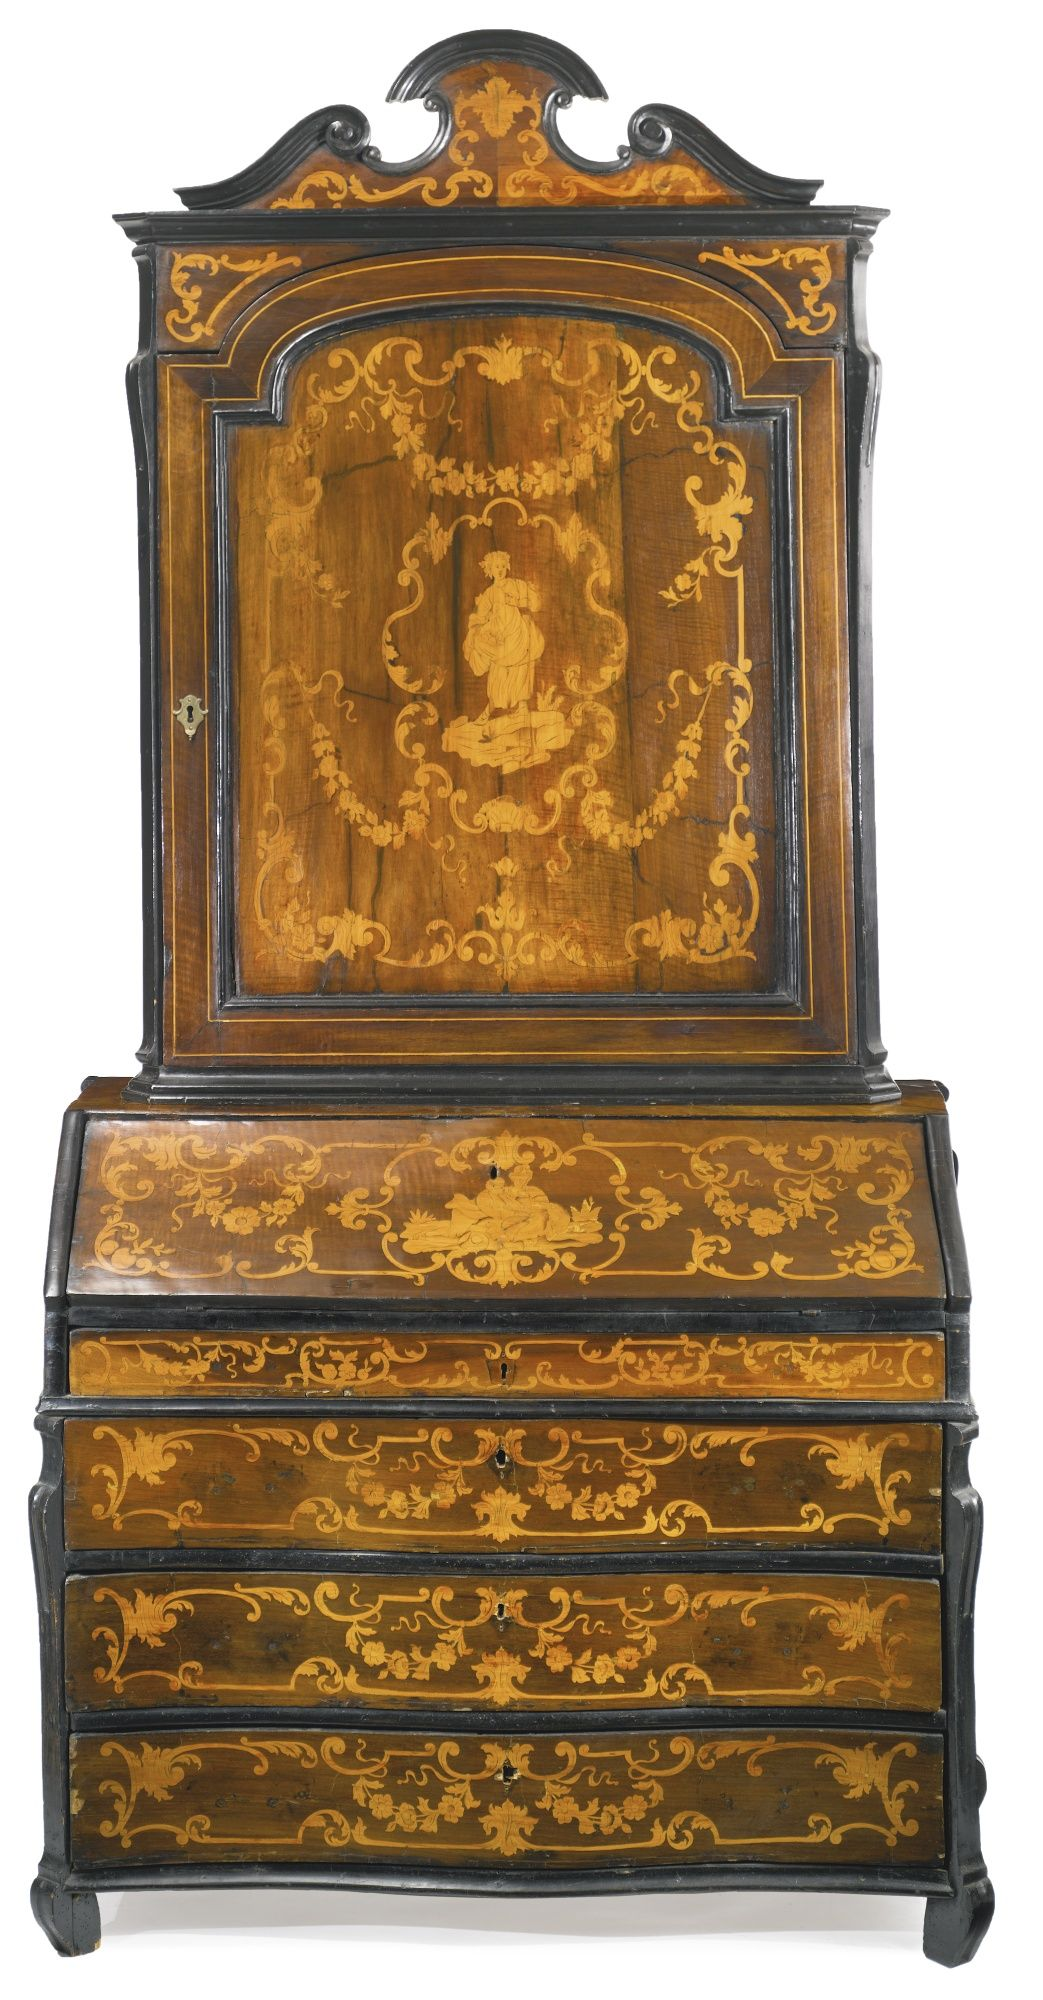 Ordinaire An Italian Rococo Walnut And Fruitwood Marquetry Bureau Cabinet Mid 18th  Century